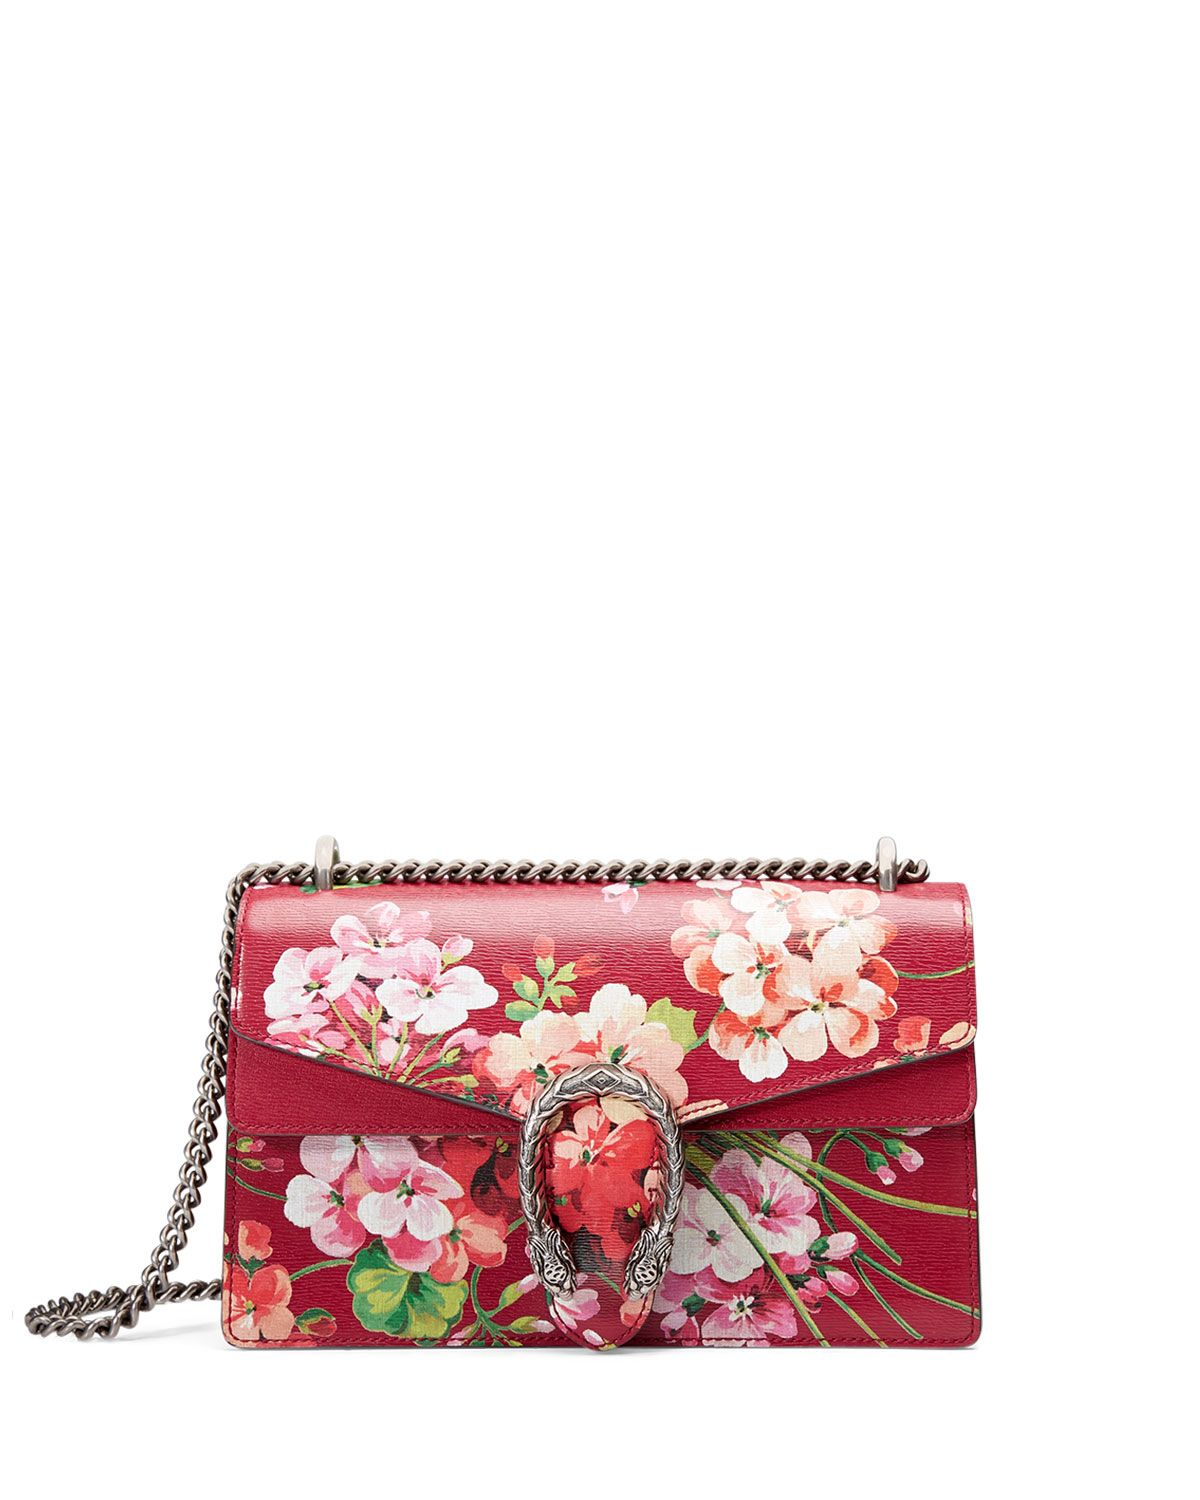 Dionysus Blooms Small Shoulder Bag 23ae24a33017